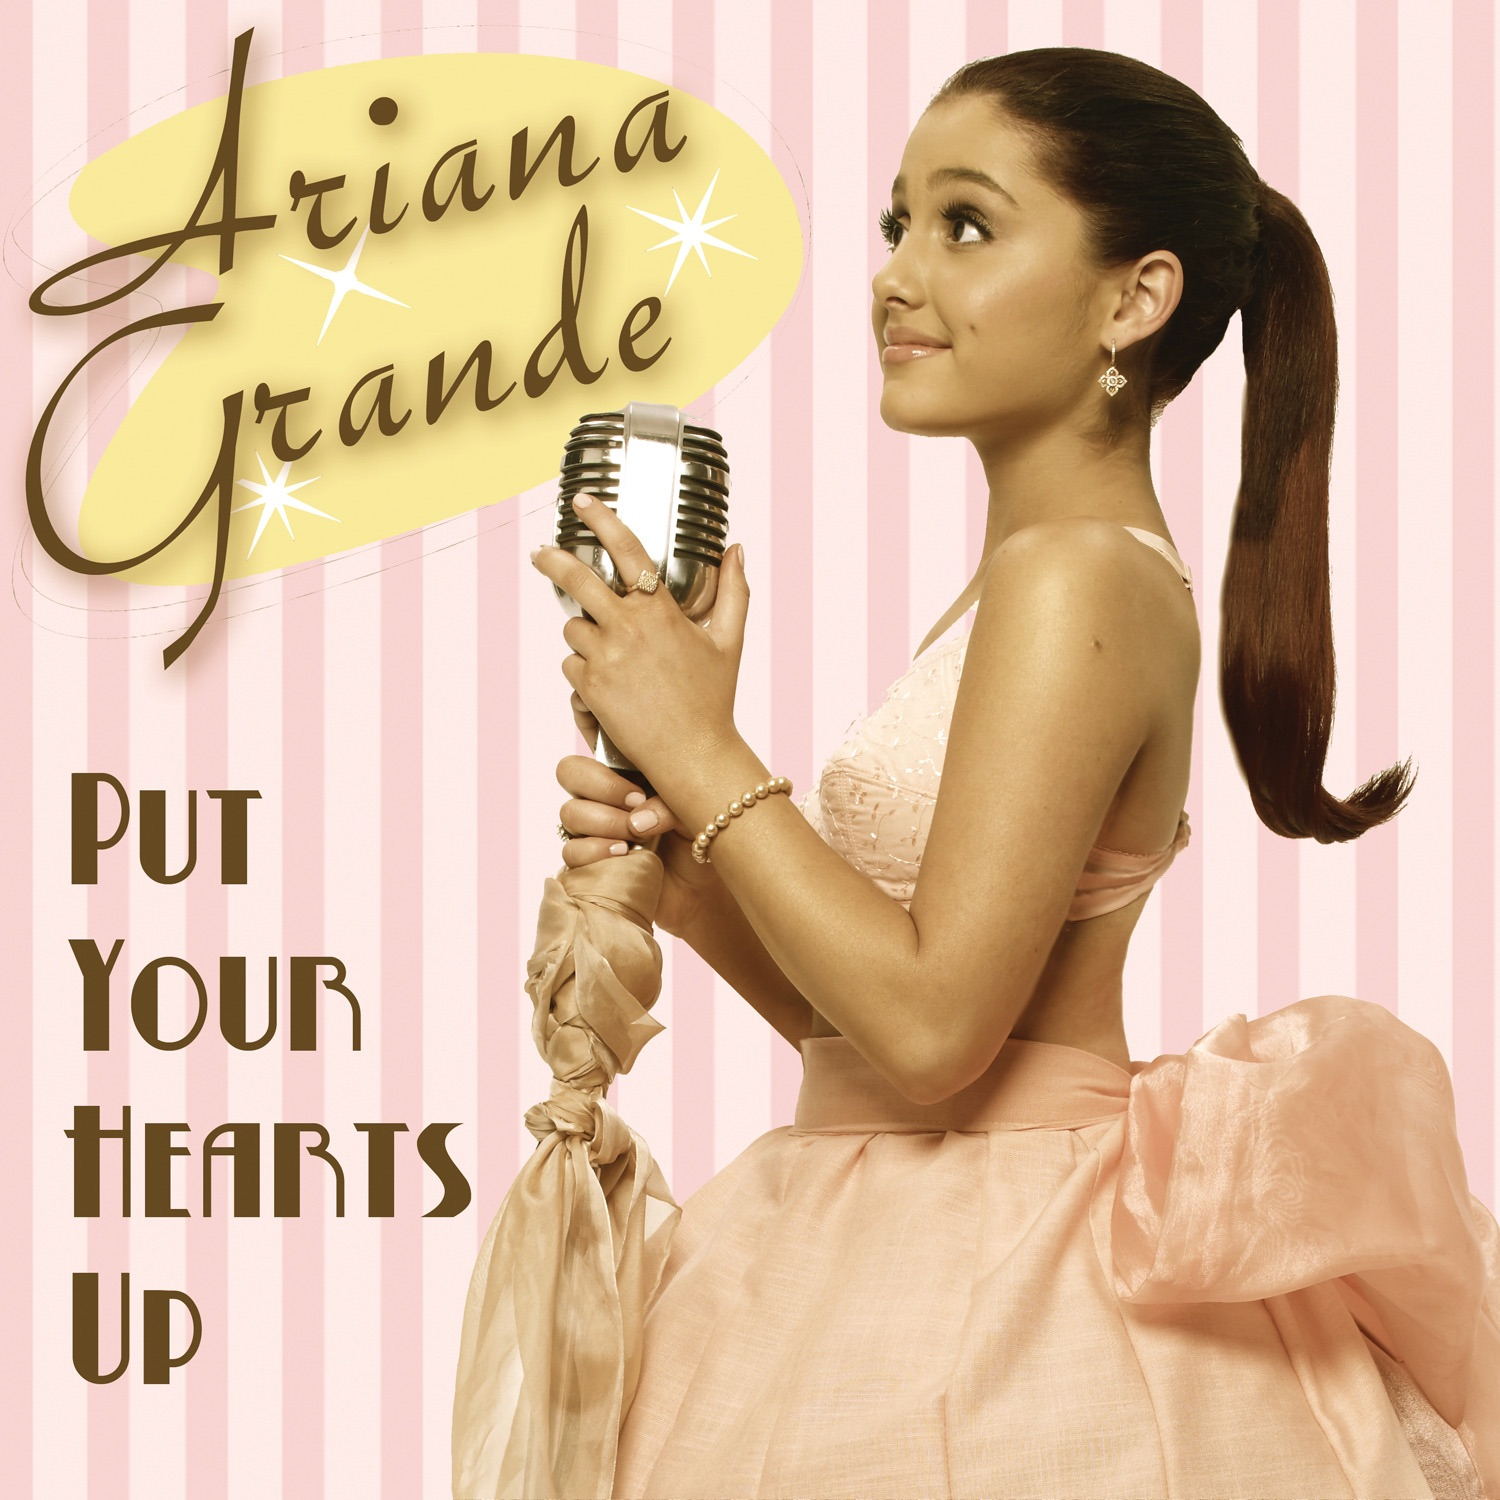 Put Your Hearts Up | Ariana Grande Wiki | Fandom